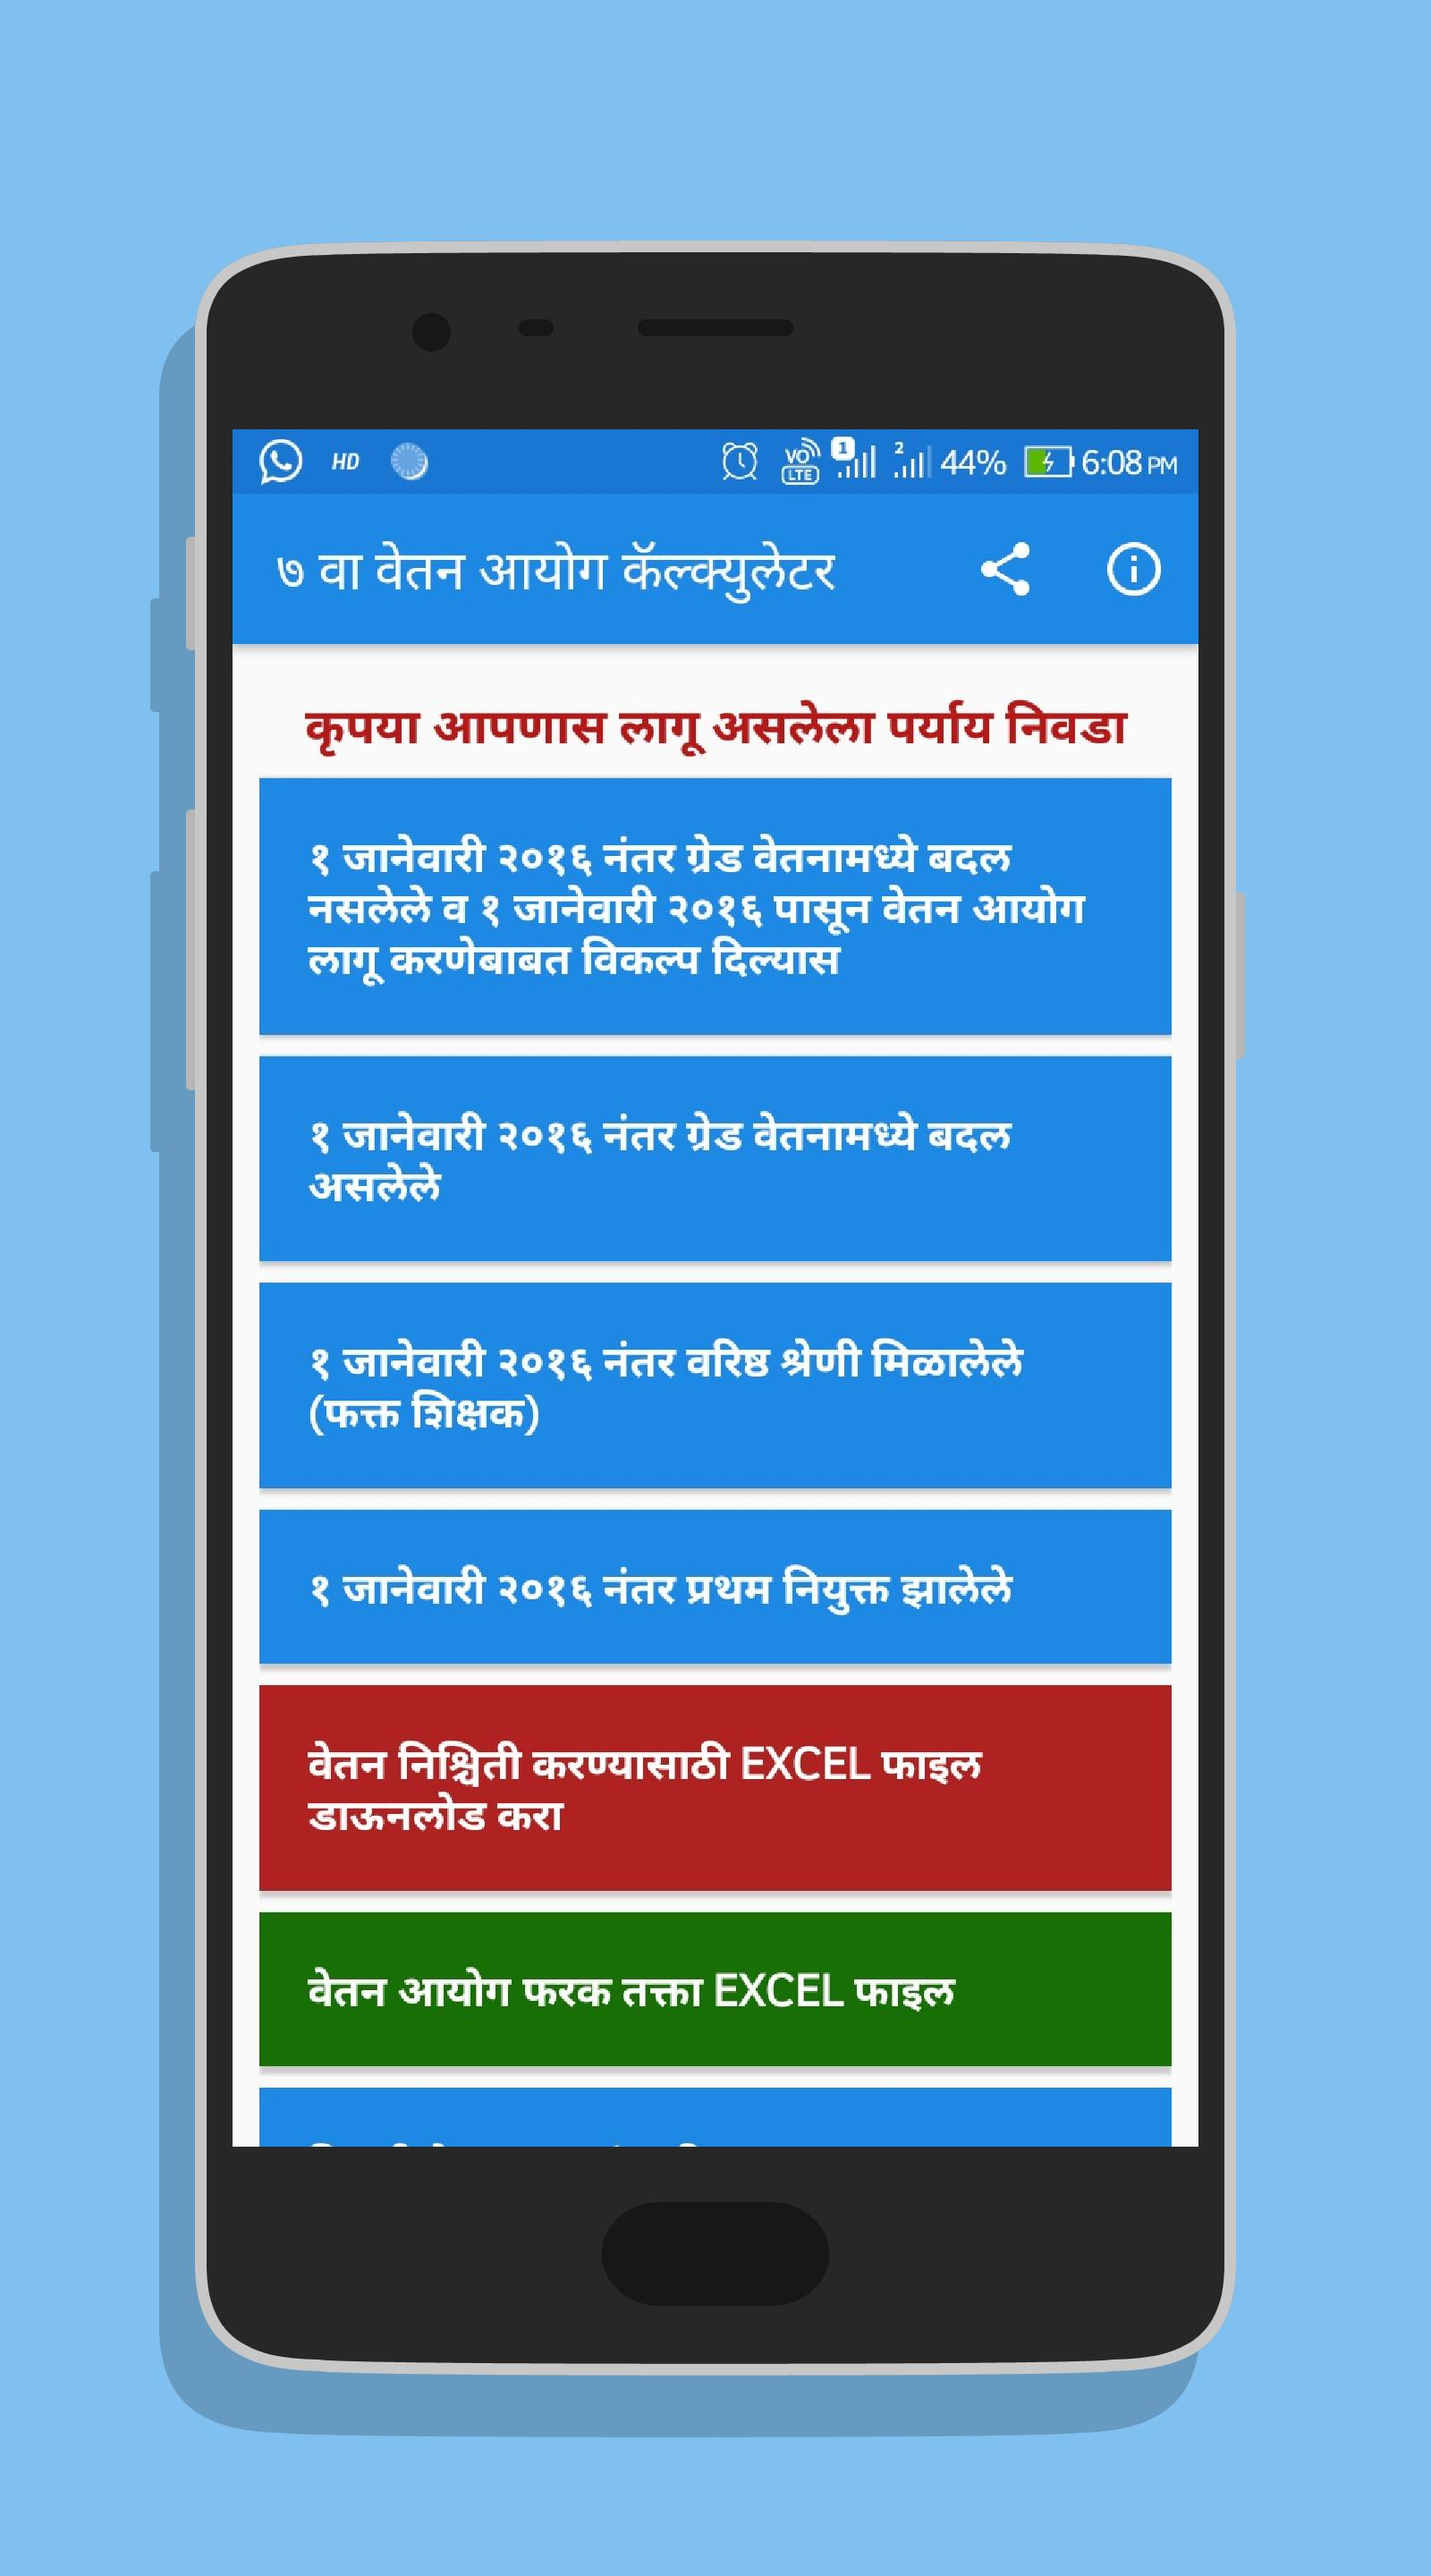 7th Pay Commission Calculator - Maharashtra for Android - APK Download